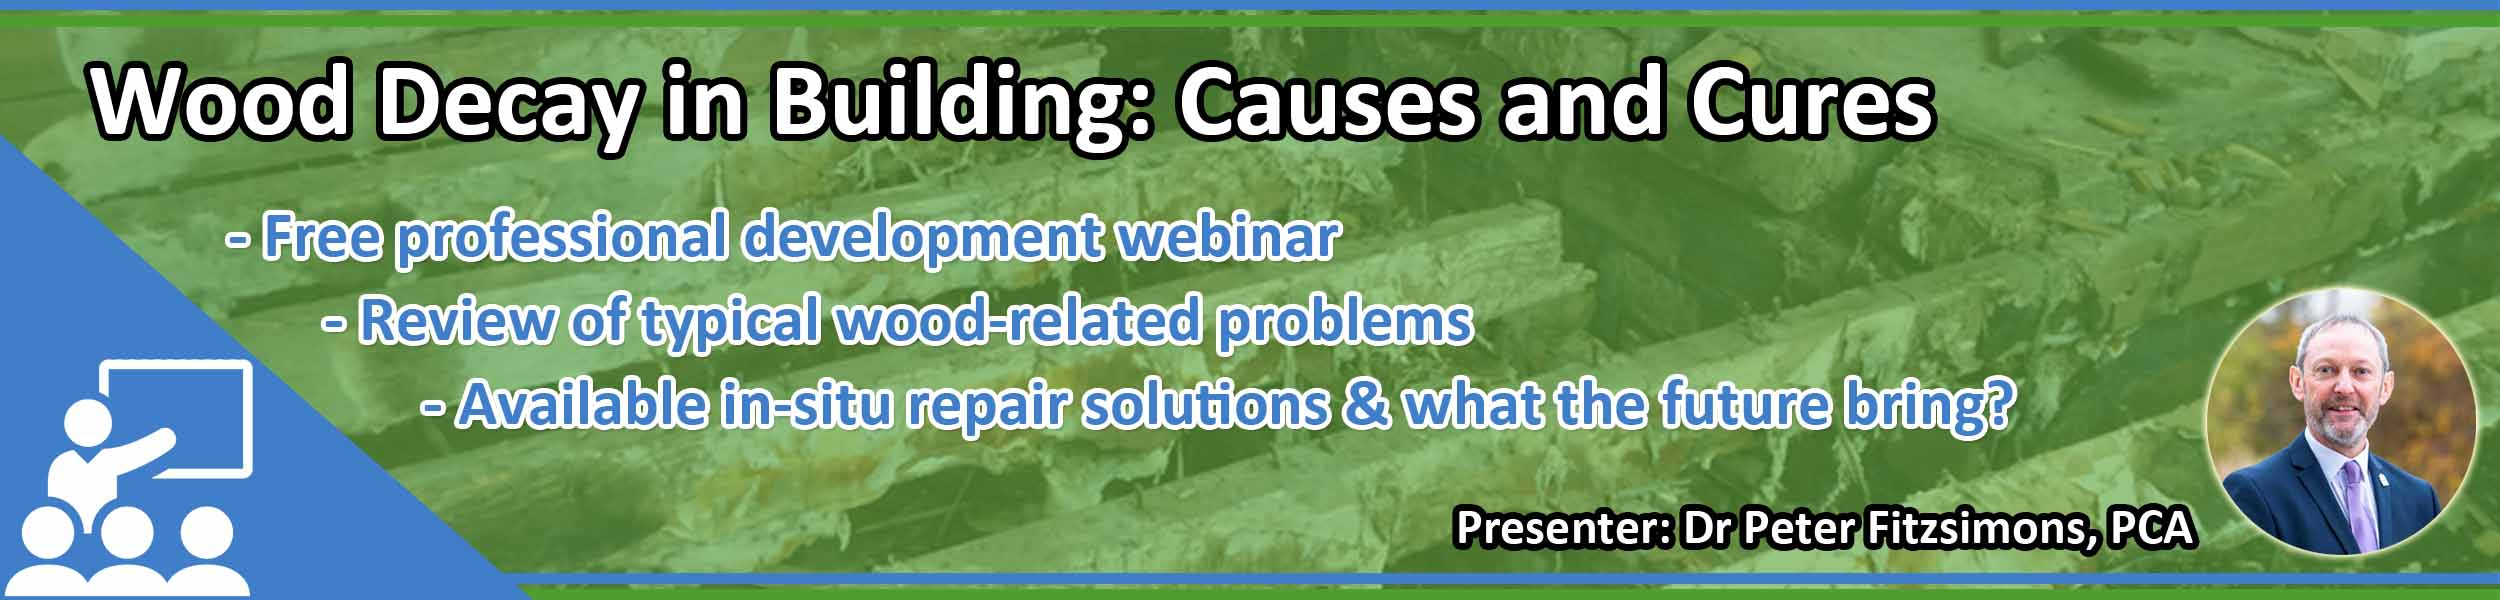 Webinar - Wood decay in buildings: causes and cures